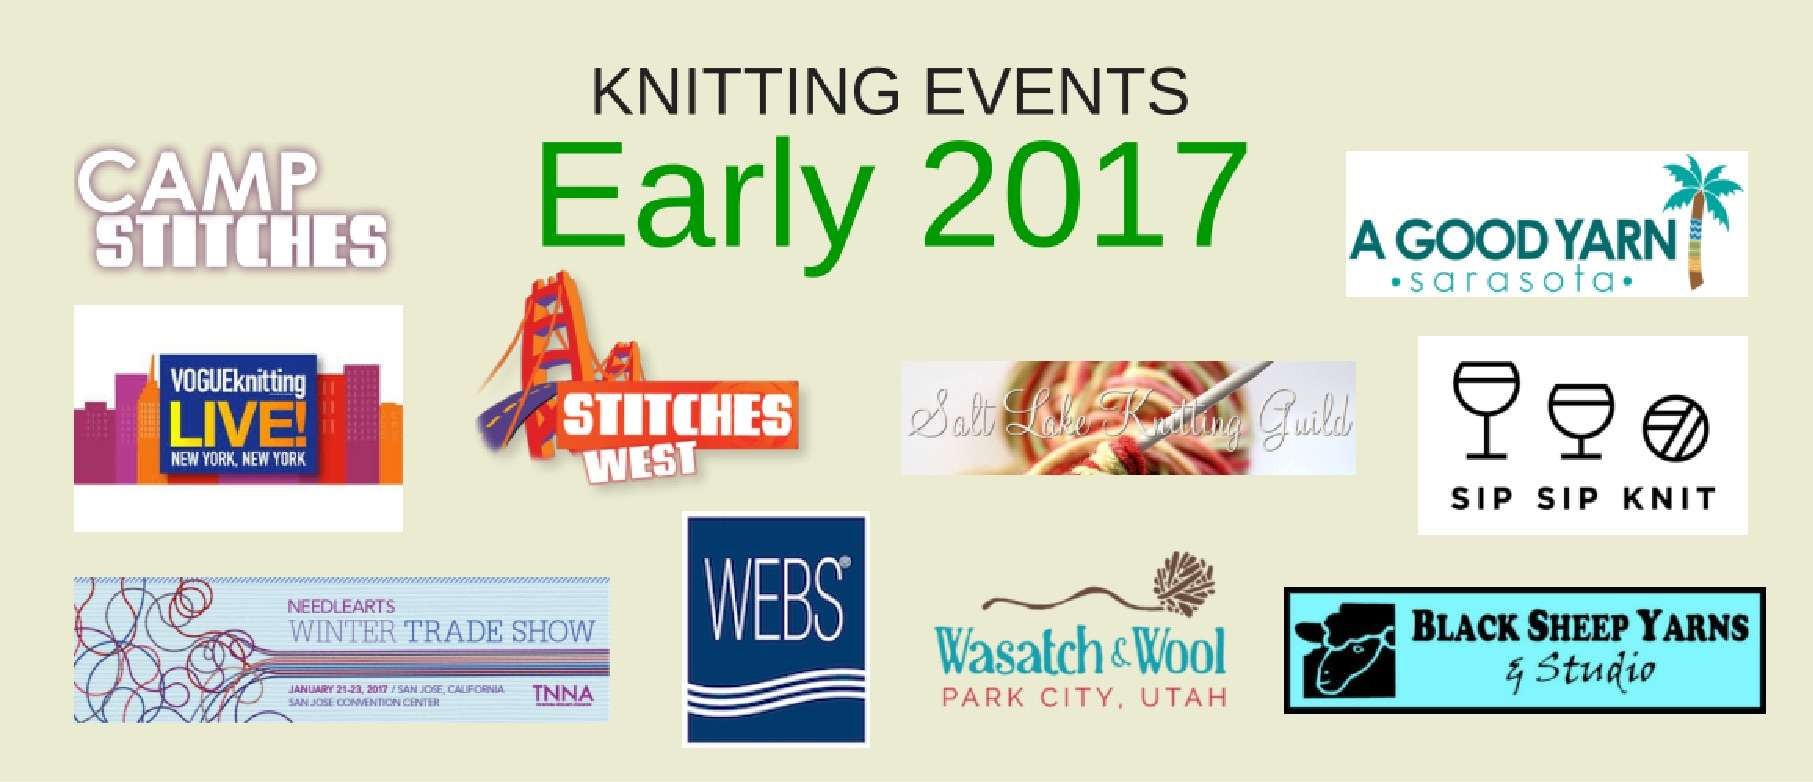 Knitting Classes Nyc : Knitting events patty lyons teacherpatty